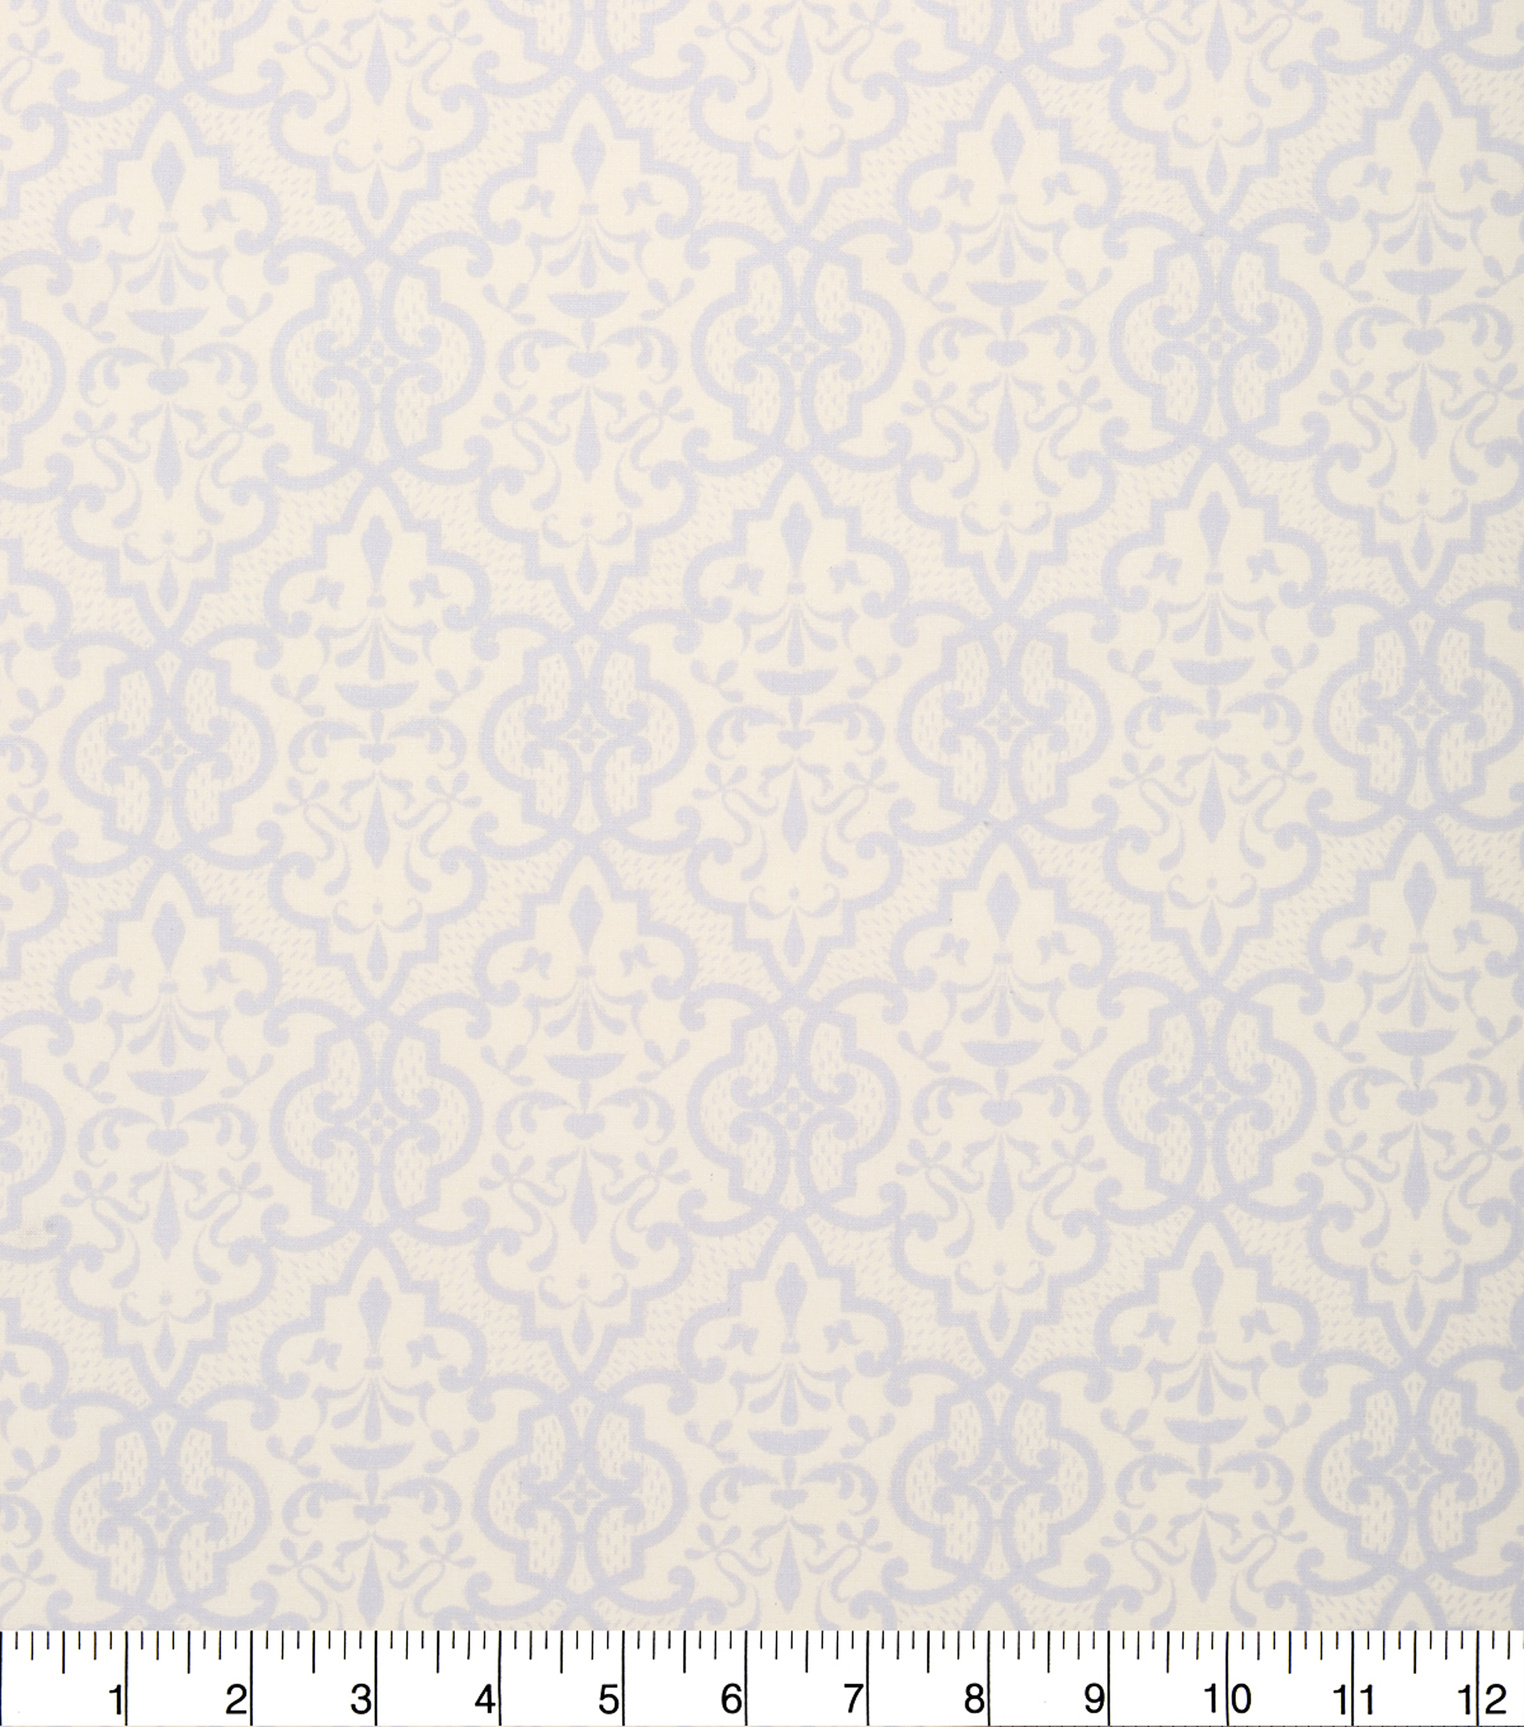 Keepsake Calico Cotton Fabric 43\u0022-Gray and Cream Lace